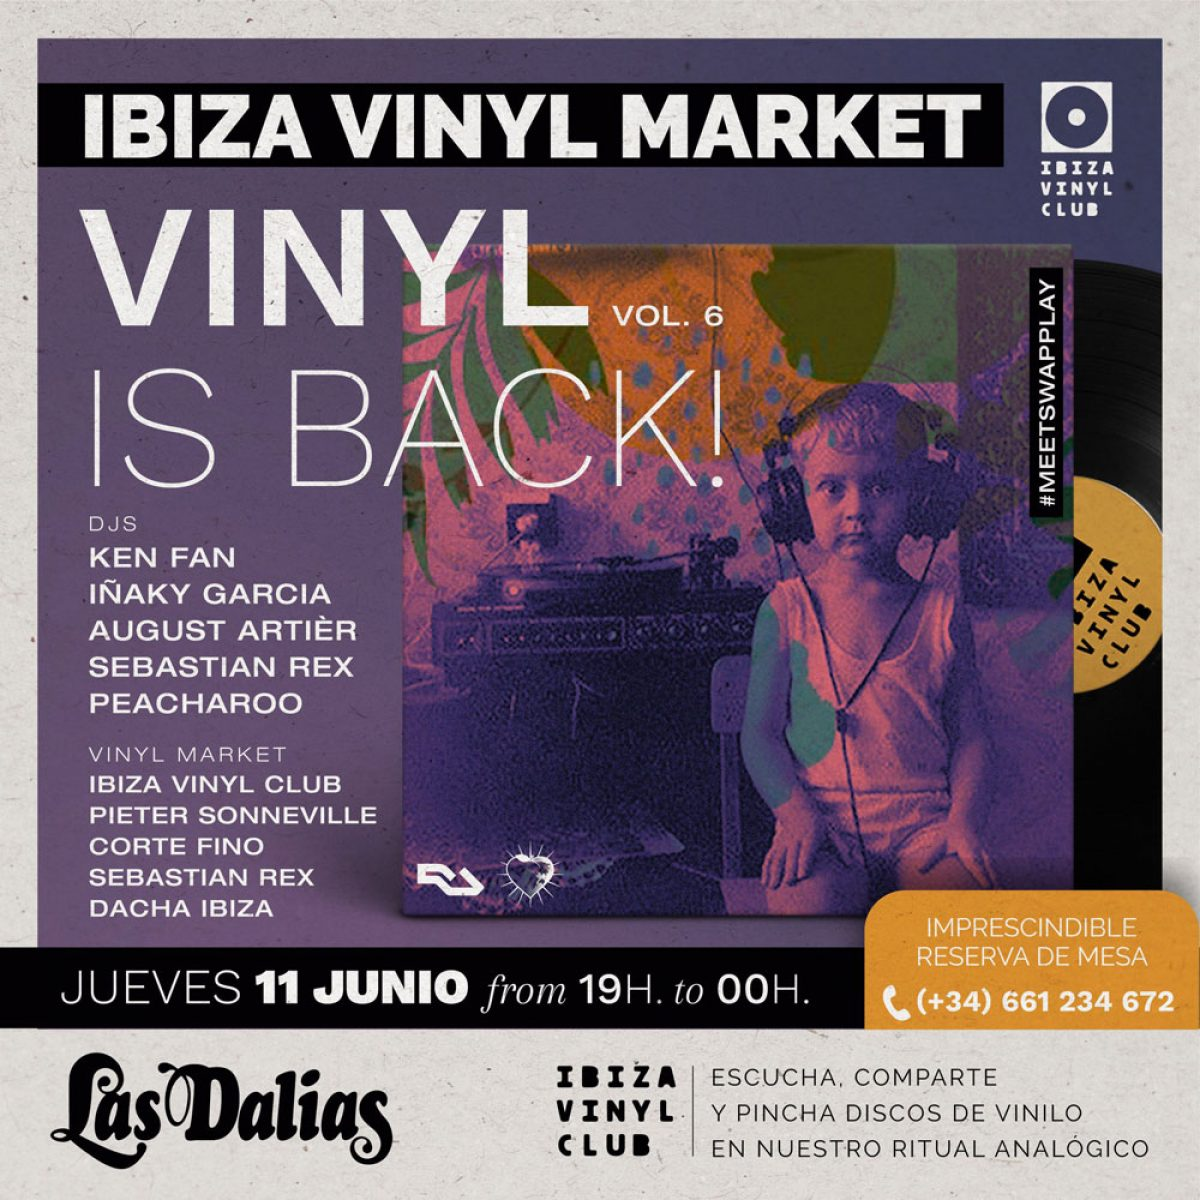 vinyl-is-back-ibiza-vinyl-club-las-dalias-ibiza-2020-welcometoibiza